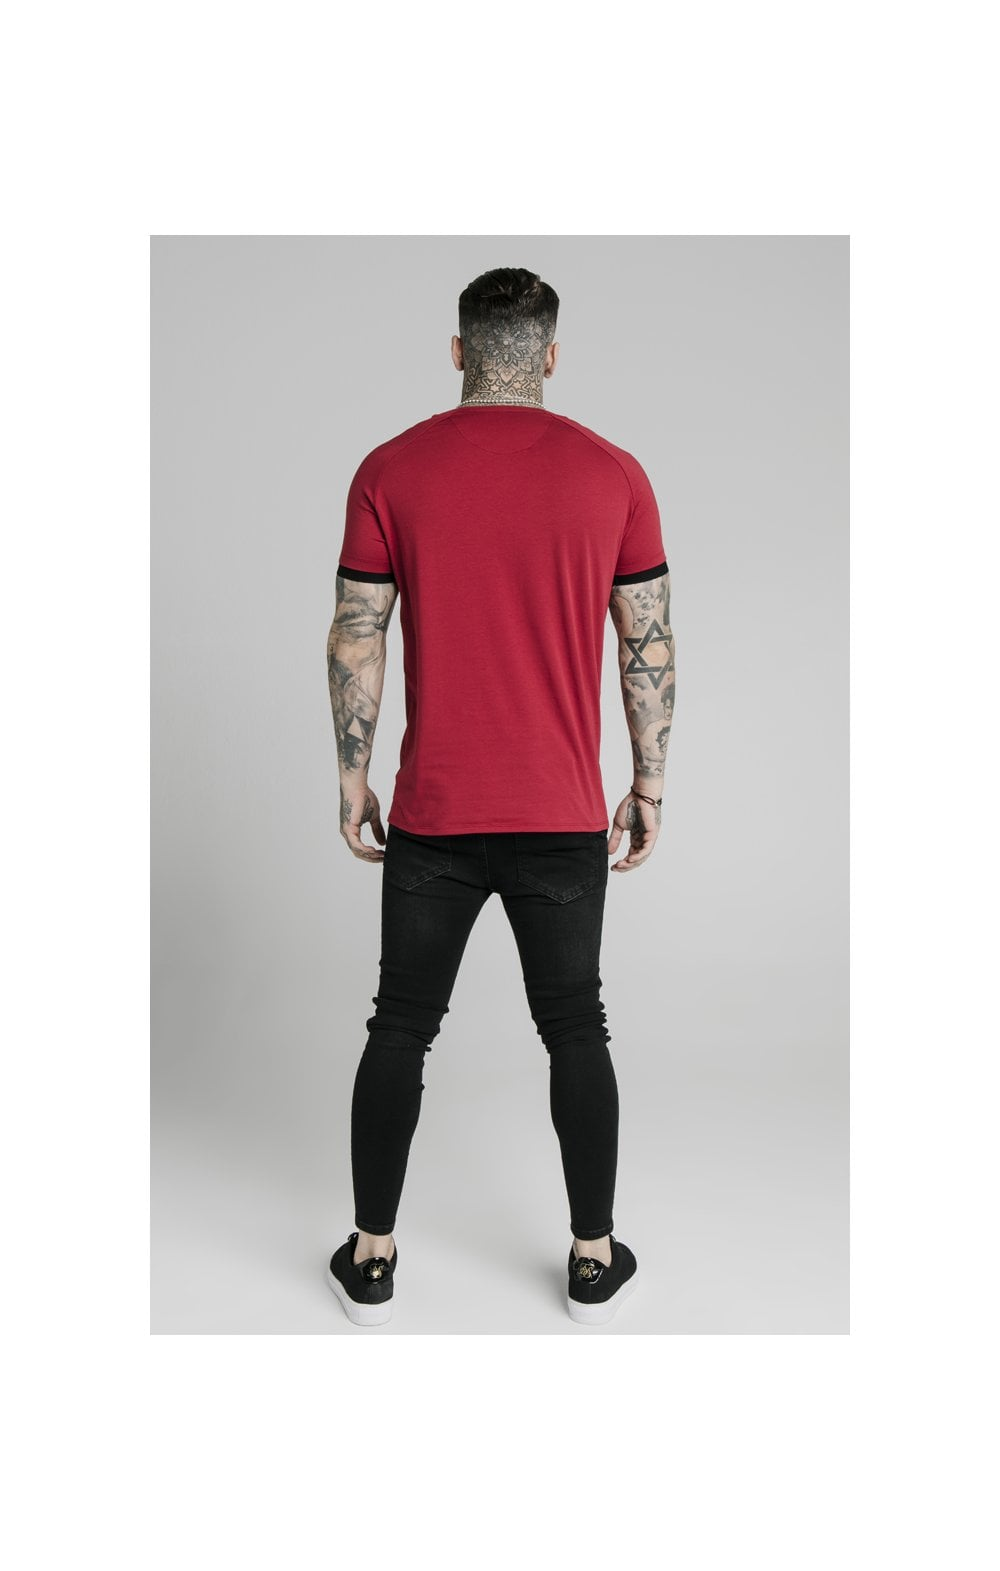 SikSilk S/S Raglan Tape Gym Tee - Red (4)